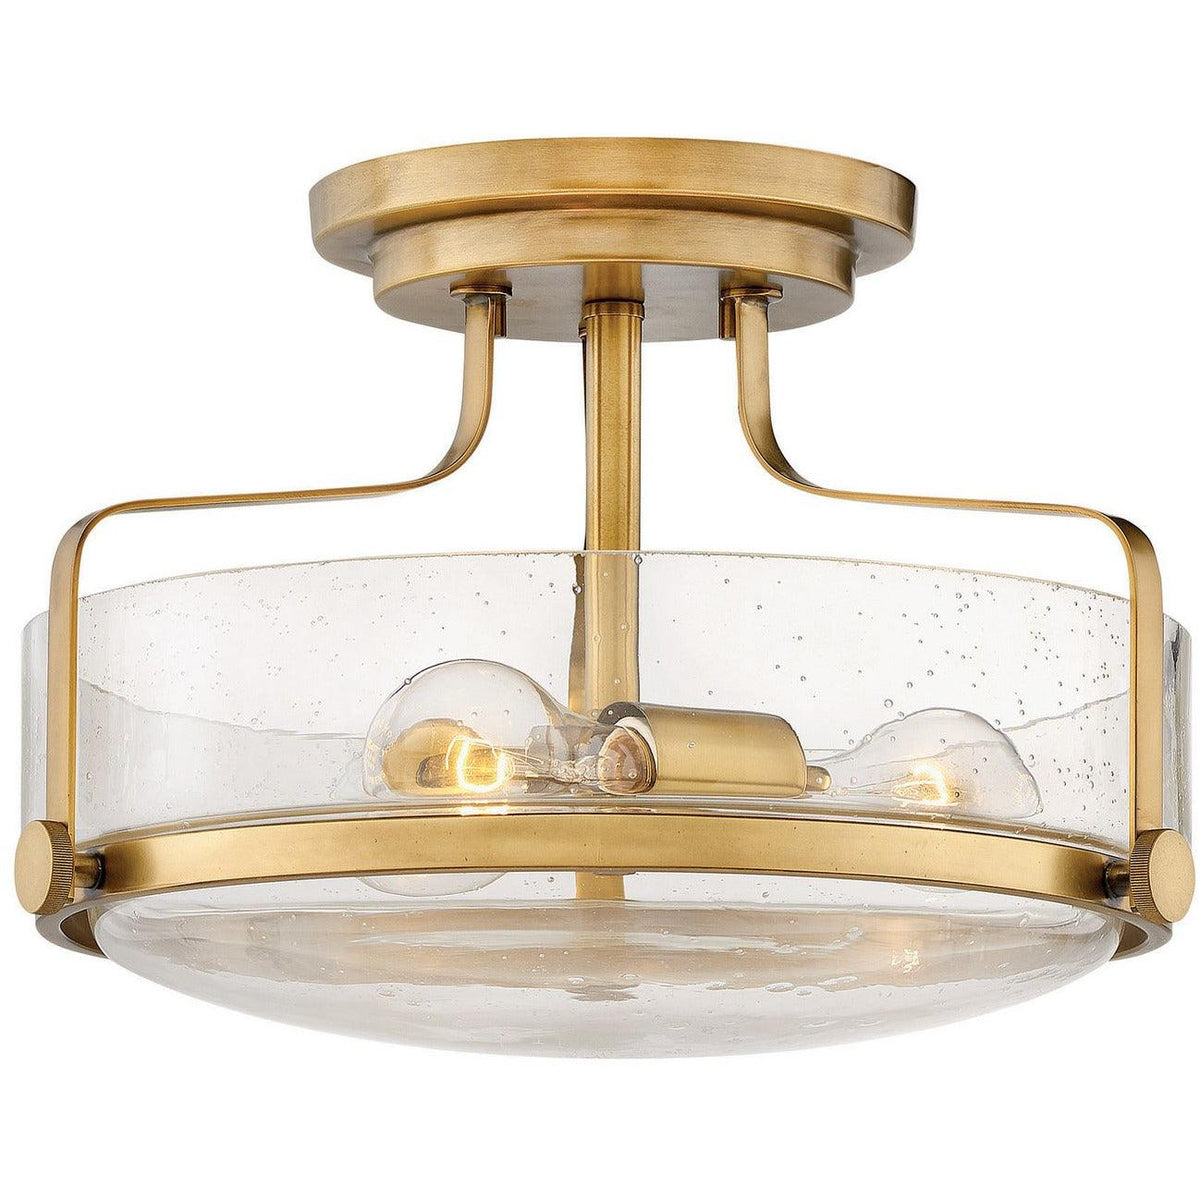 Hinkley Canada - 3641HB-CS - Three Light Semi-Flush Mount - Harper - Heritage Brass With Clear Seedy Glass